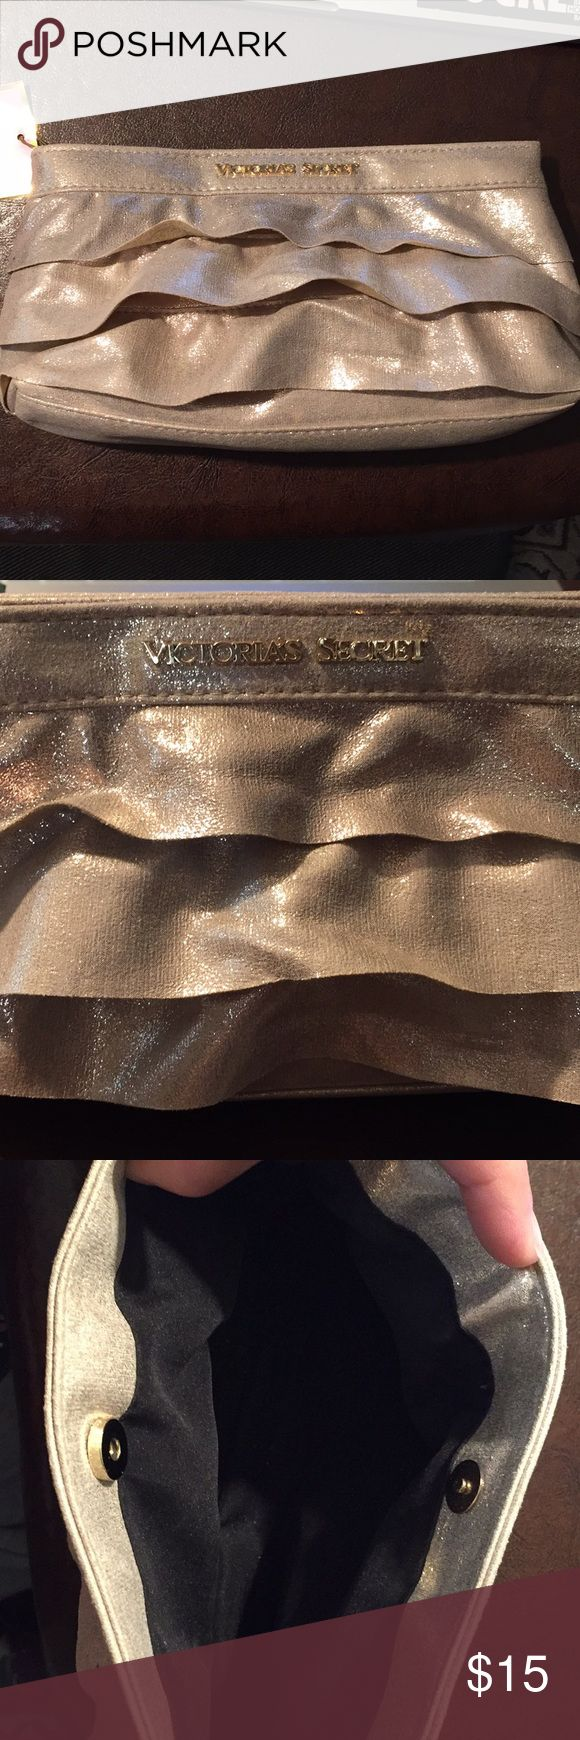 Victoria's Secret clutch bag Sparkly beige clutch purse with magnetic clasp. New and unused. Victoria's Secret Bags Clutches & Wristlets